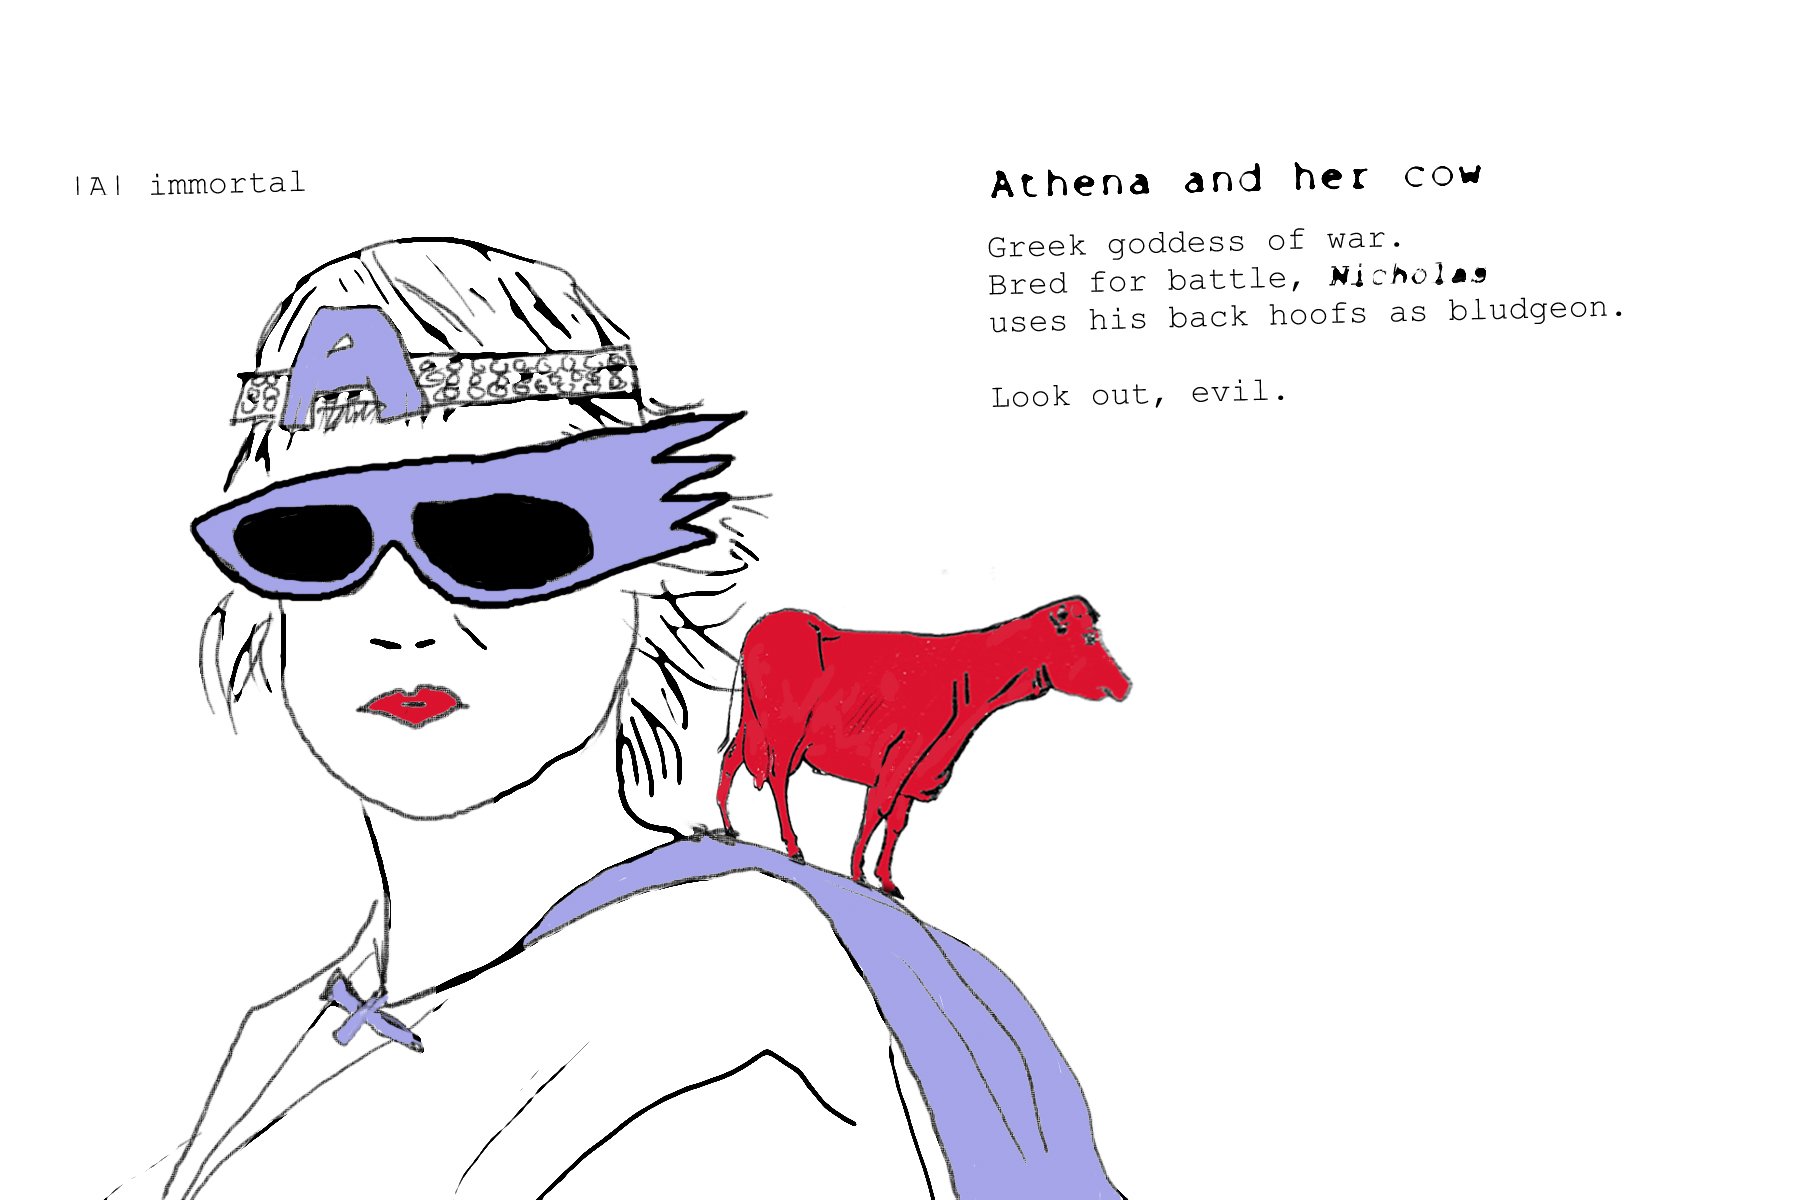 warriors and their pets_01 athena.jpg